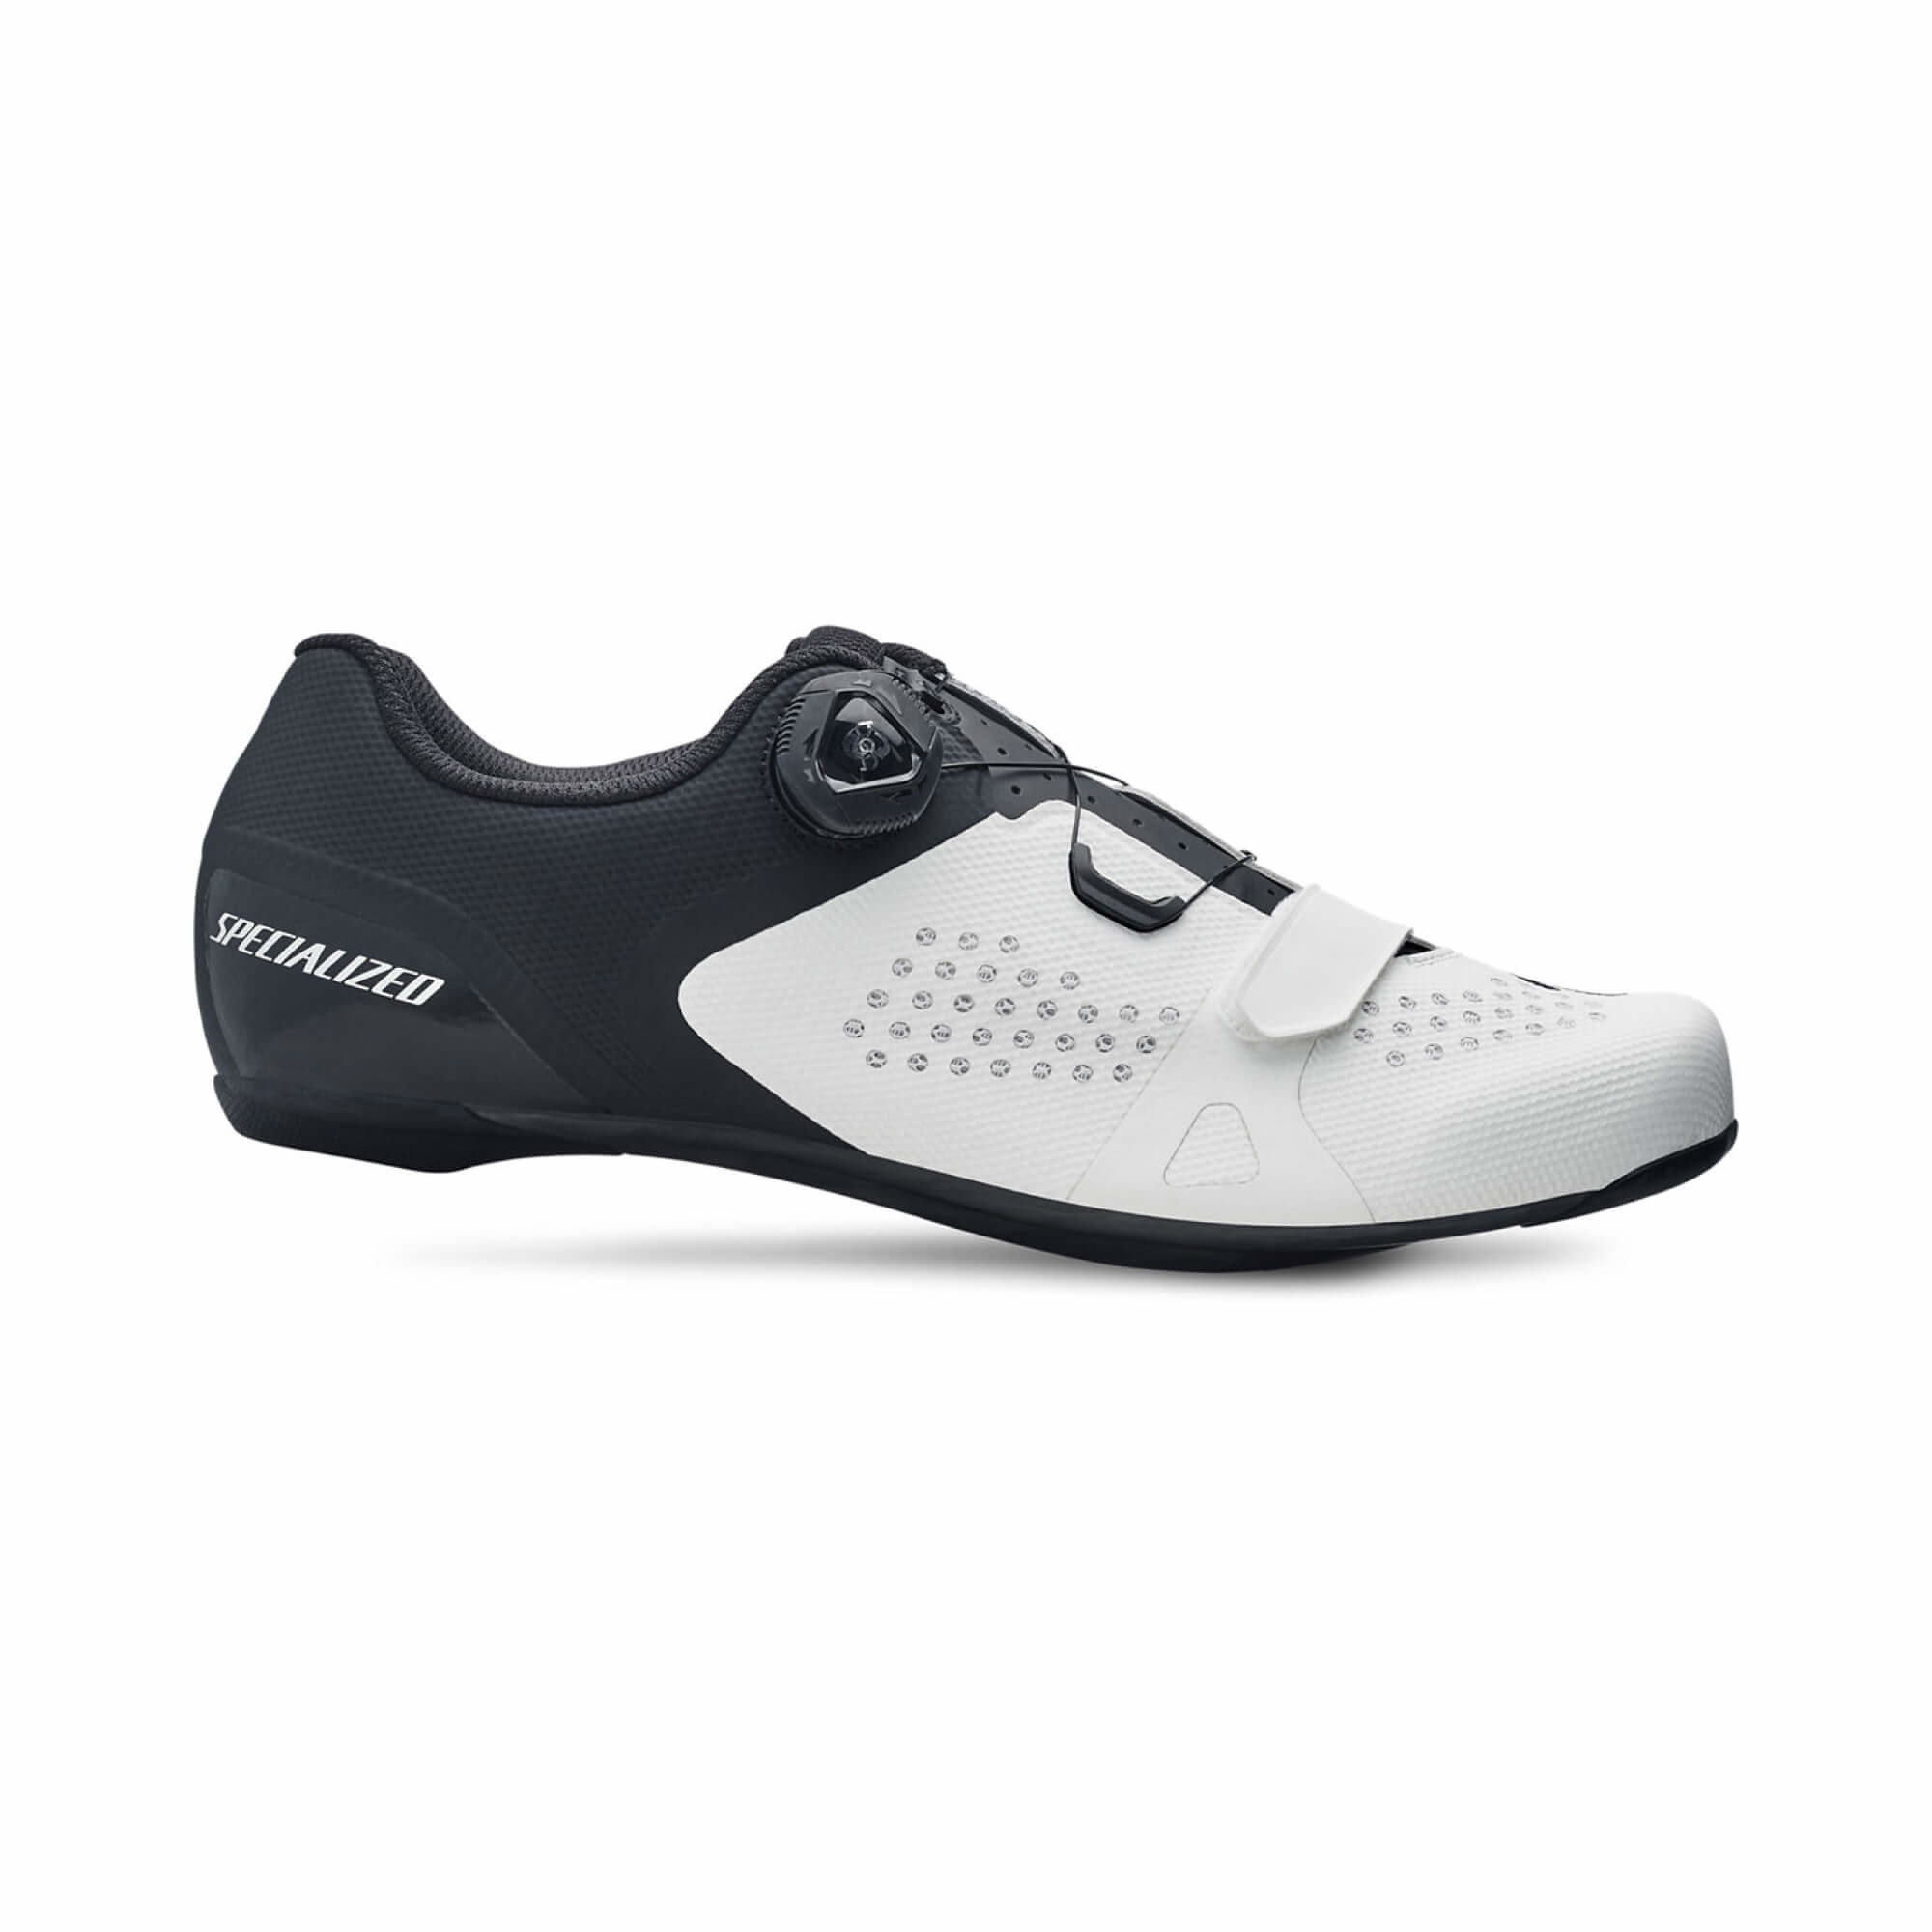 Torch 3.0 Road Shoe-10